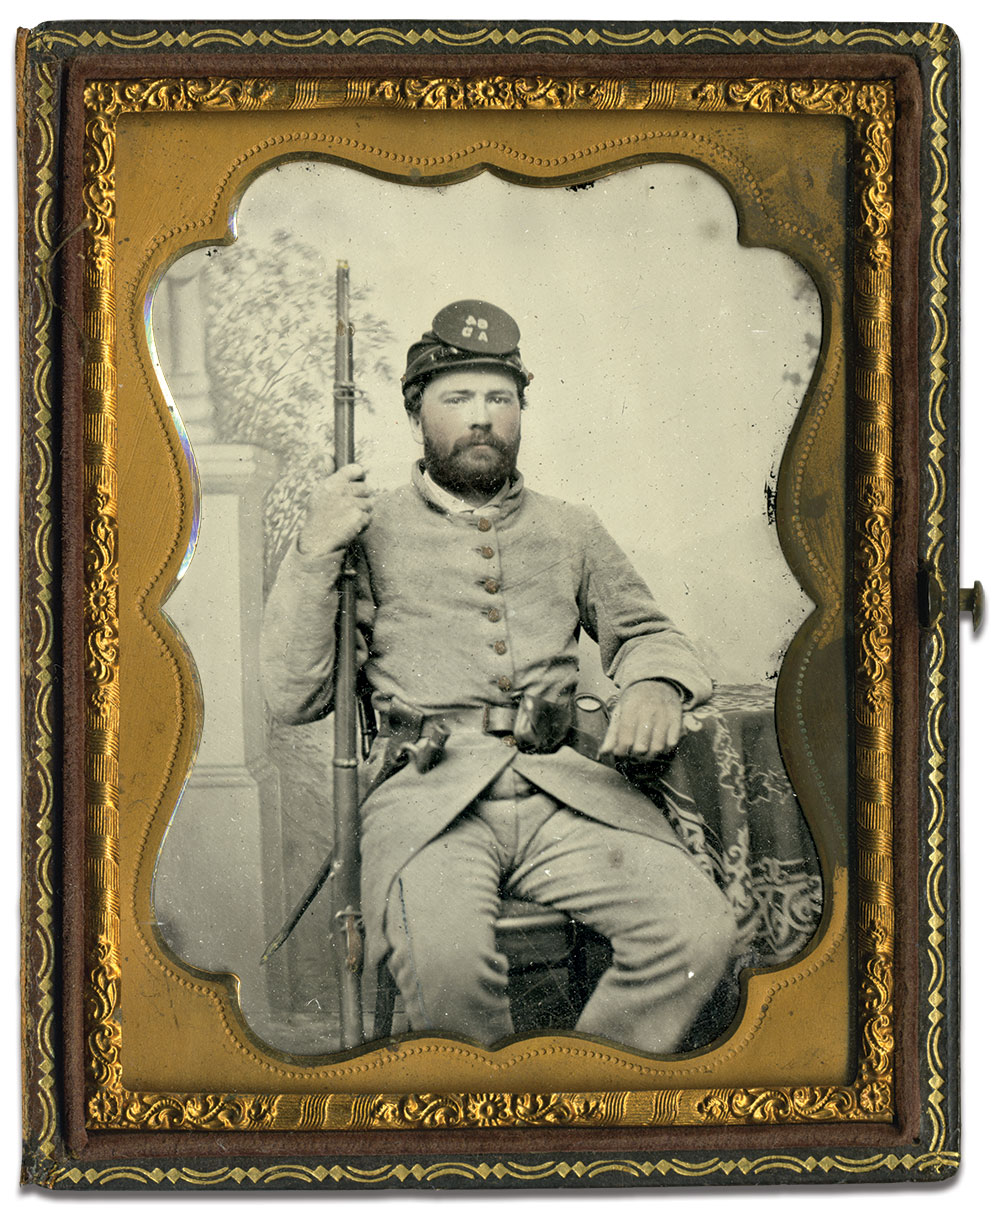 Quarter-plate ambrotype by George S. Cook of Charleston, S.C. Richard Ferry collection.